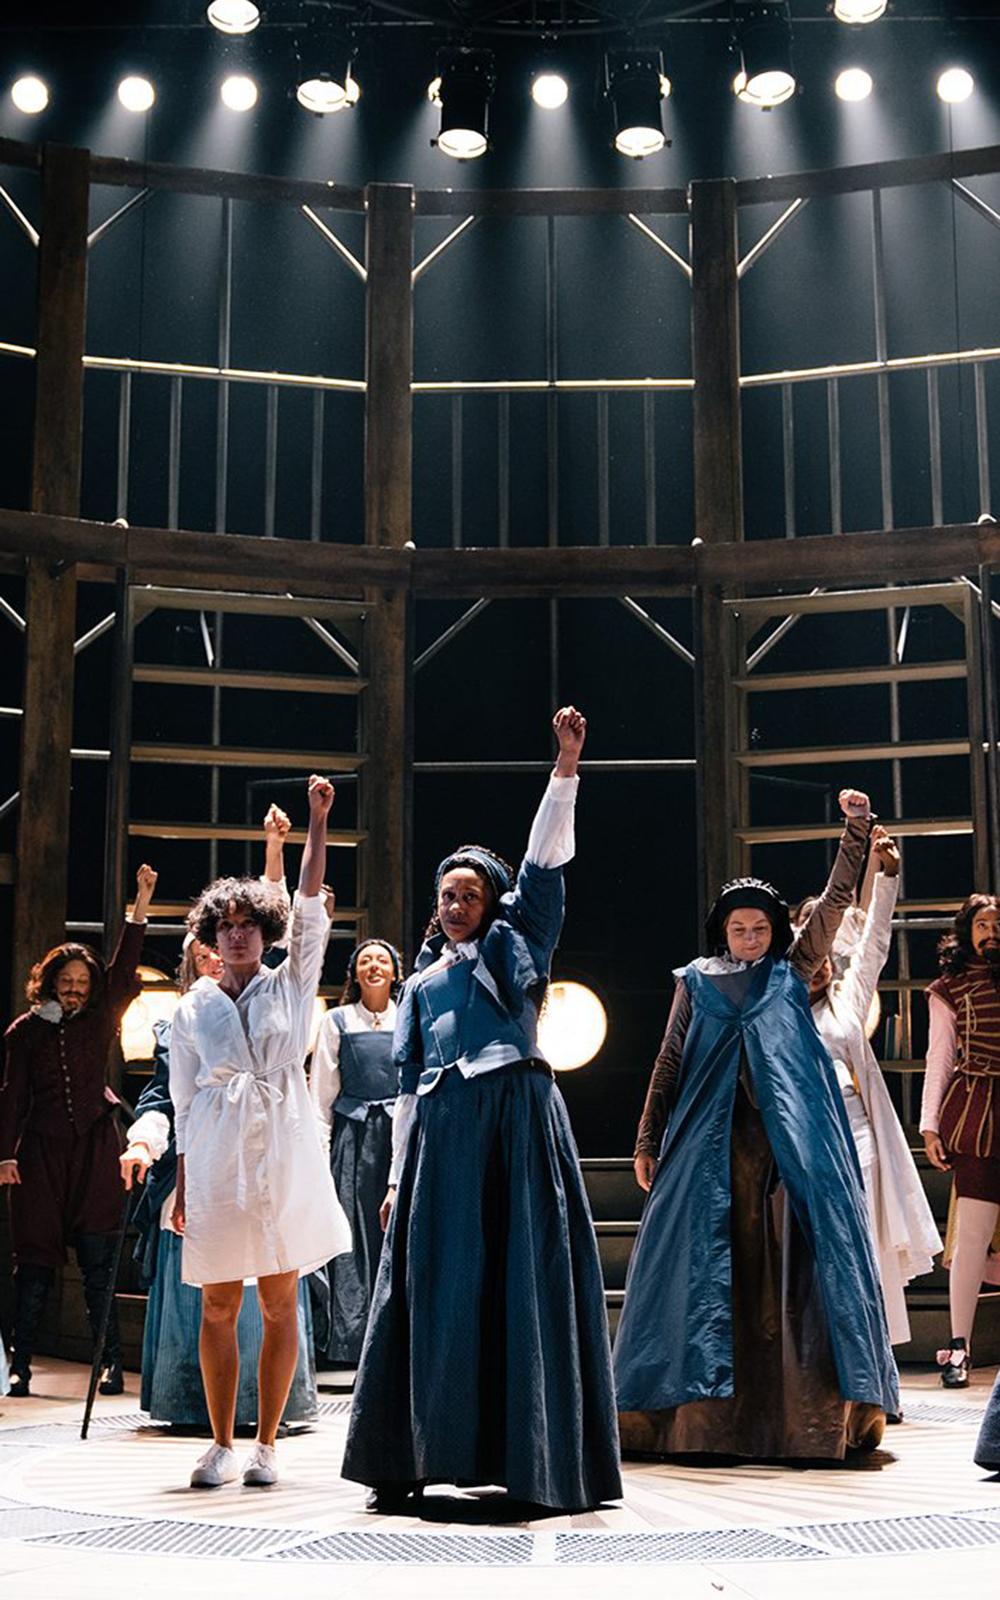 A group of women hold their fists in the air on a dramatically lit stage